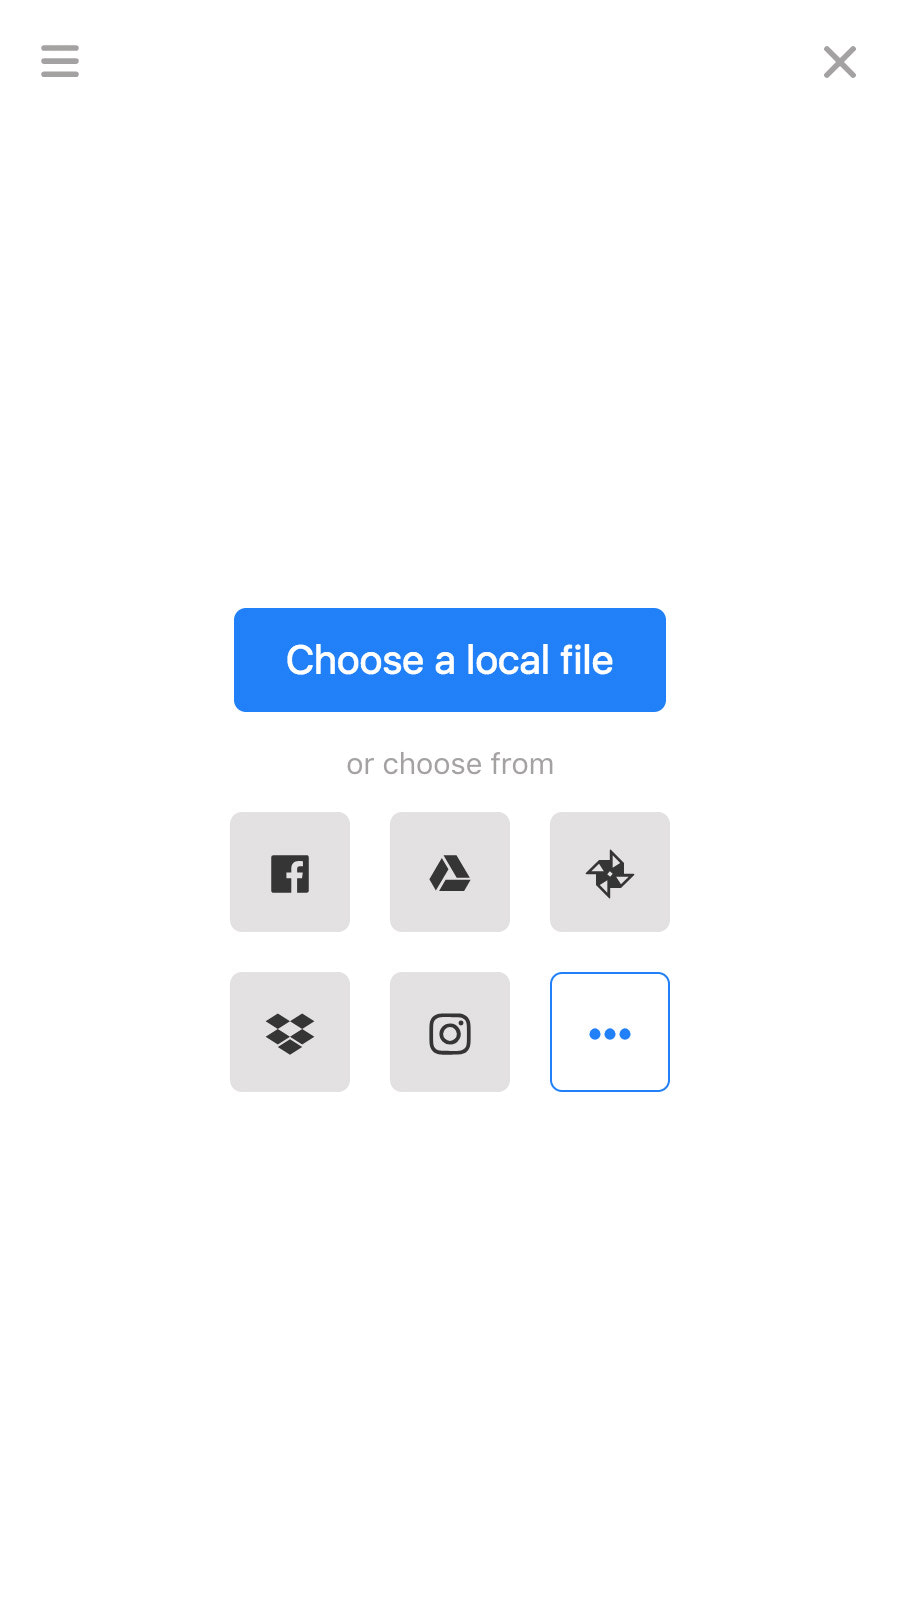 Customers can upload or import files from loads of sources